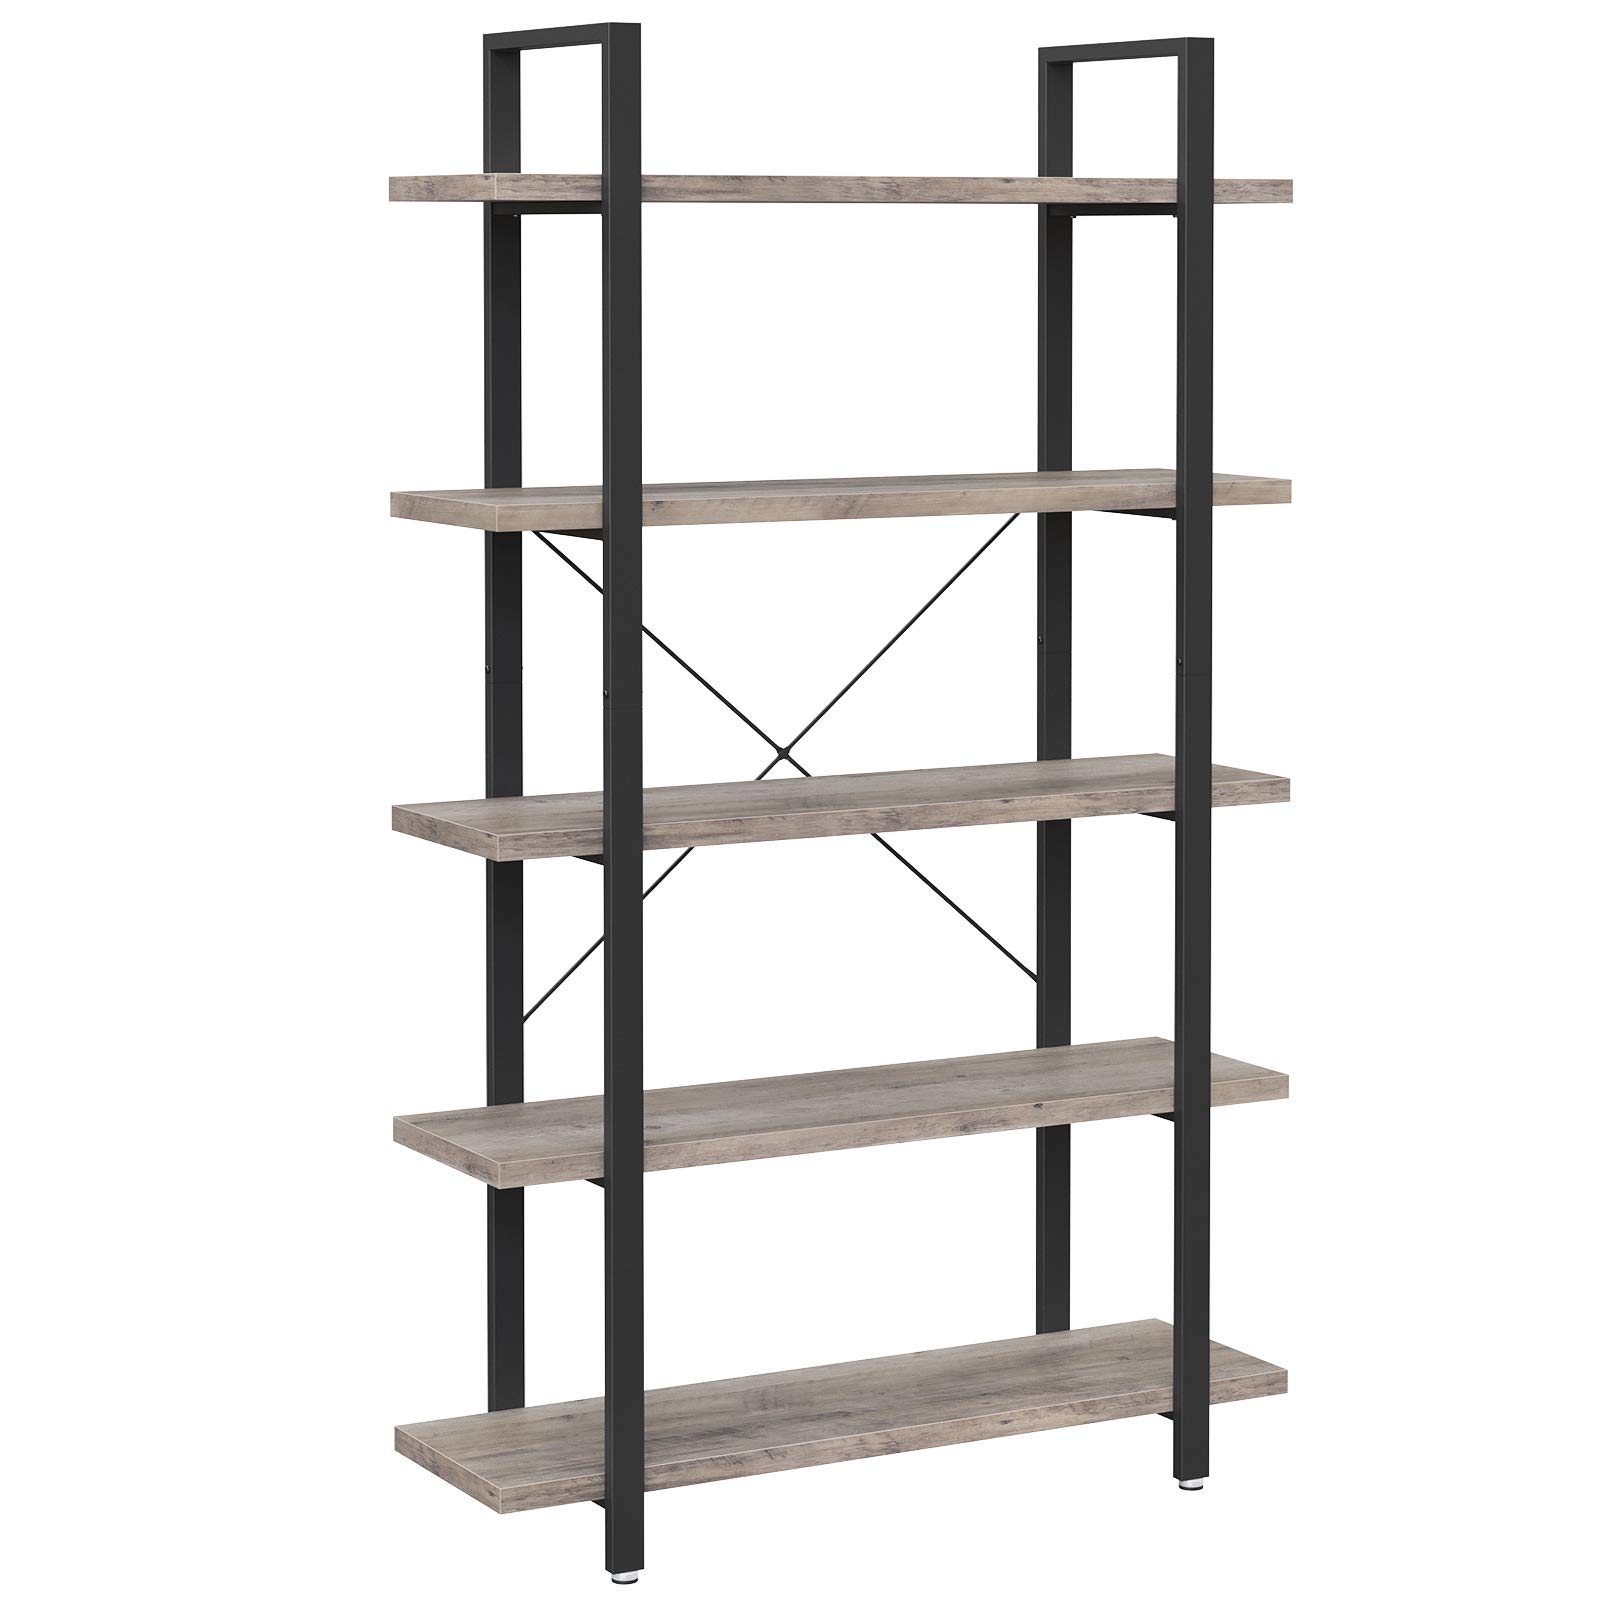 VASAGLE Bookshelf, 5-Tier Industrial Stable Bookcase, Storage Rack, Standing Shelf, Easy Assembly, Living Room, Bedroom, Office, Greige and Black LLS055B02